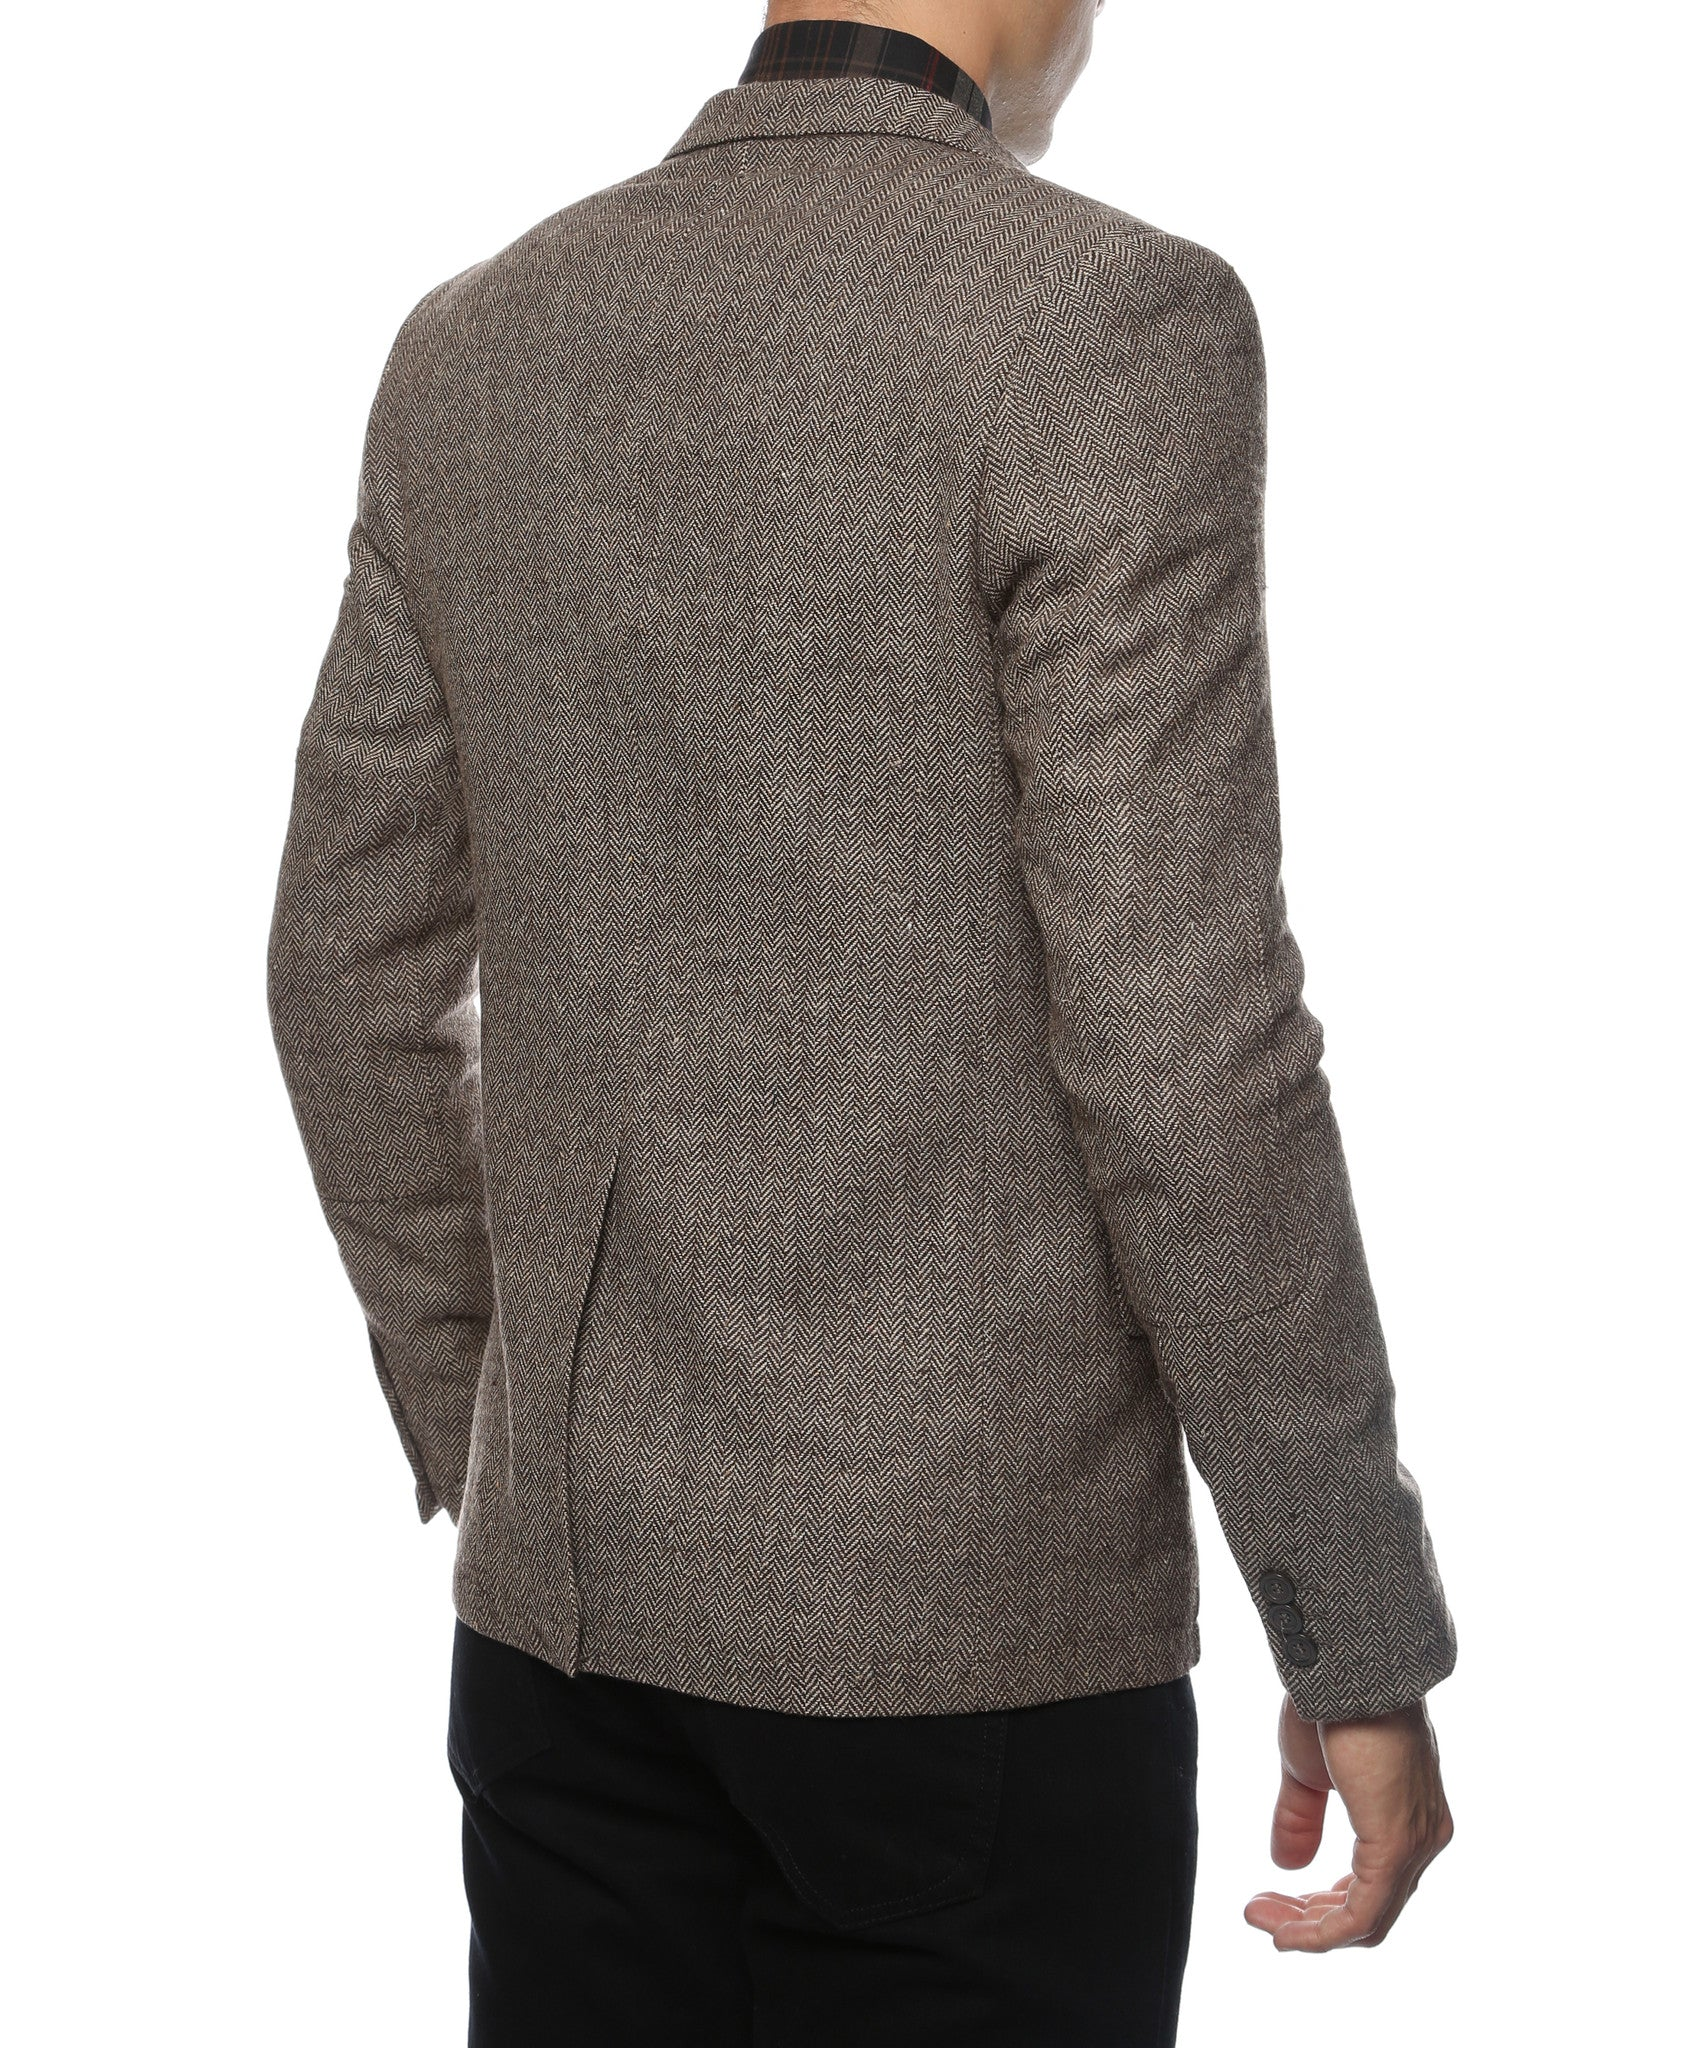 The Hardy Brown Herringbone Super Slim Fit Mens Blazer